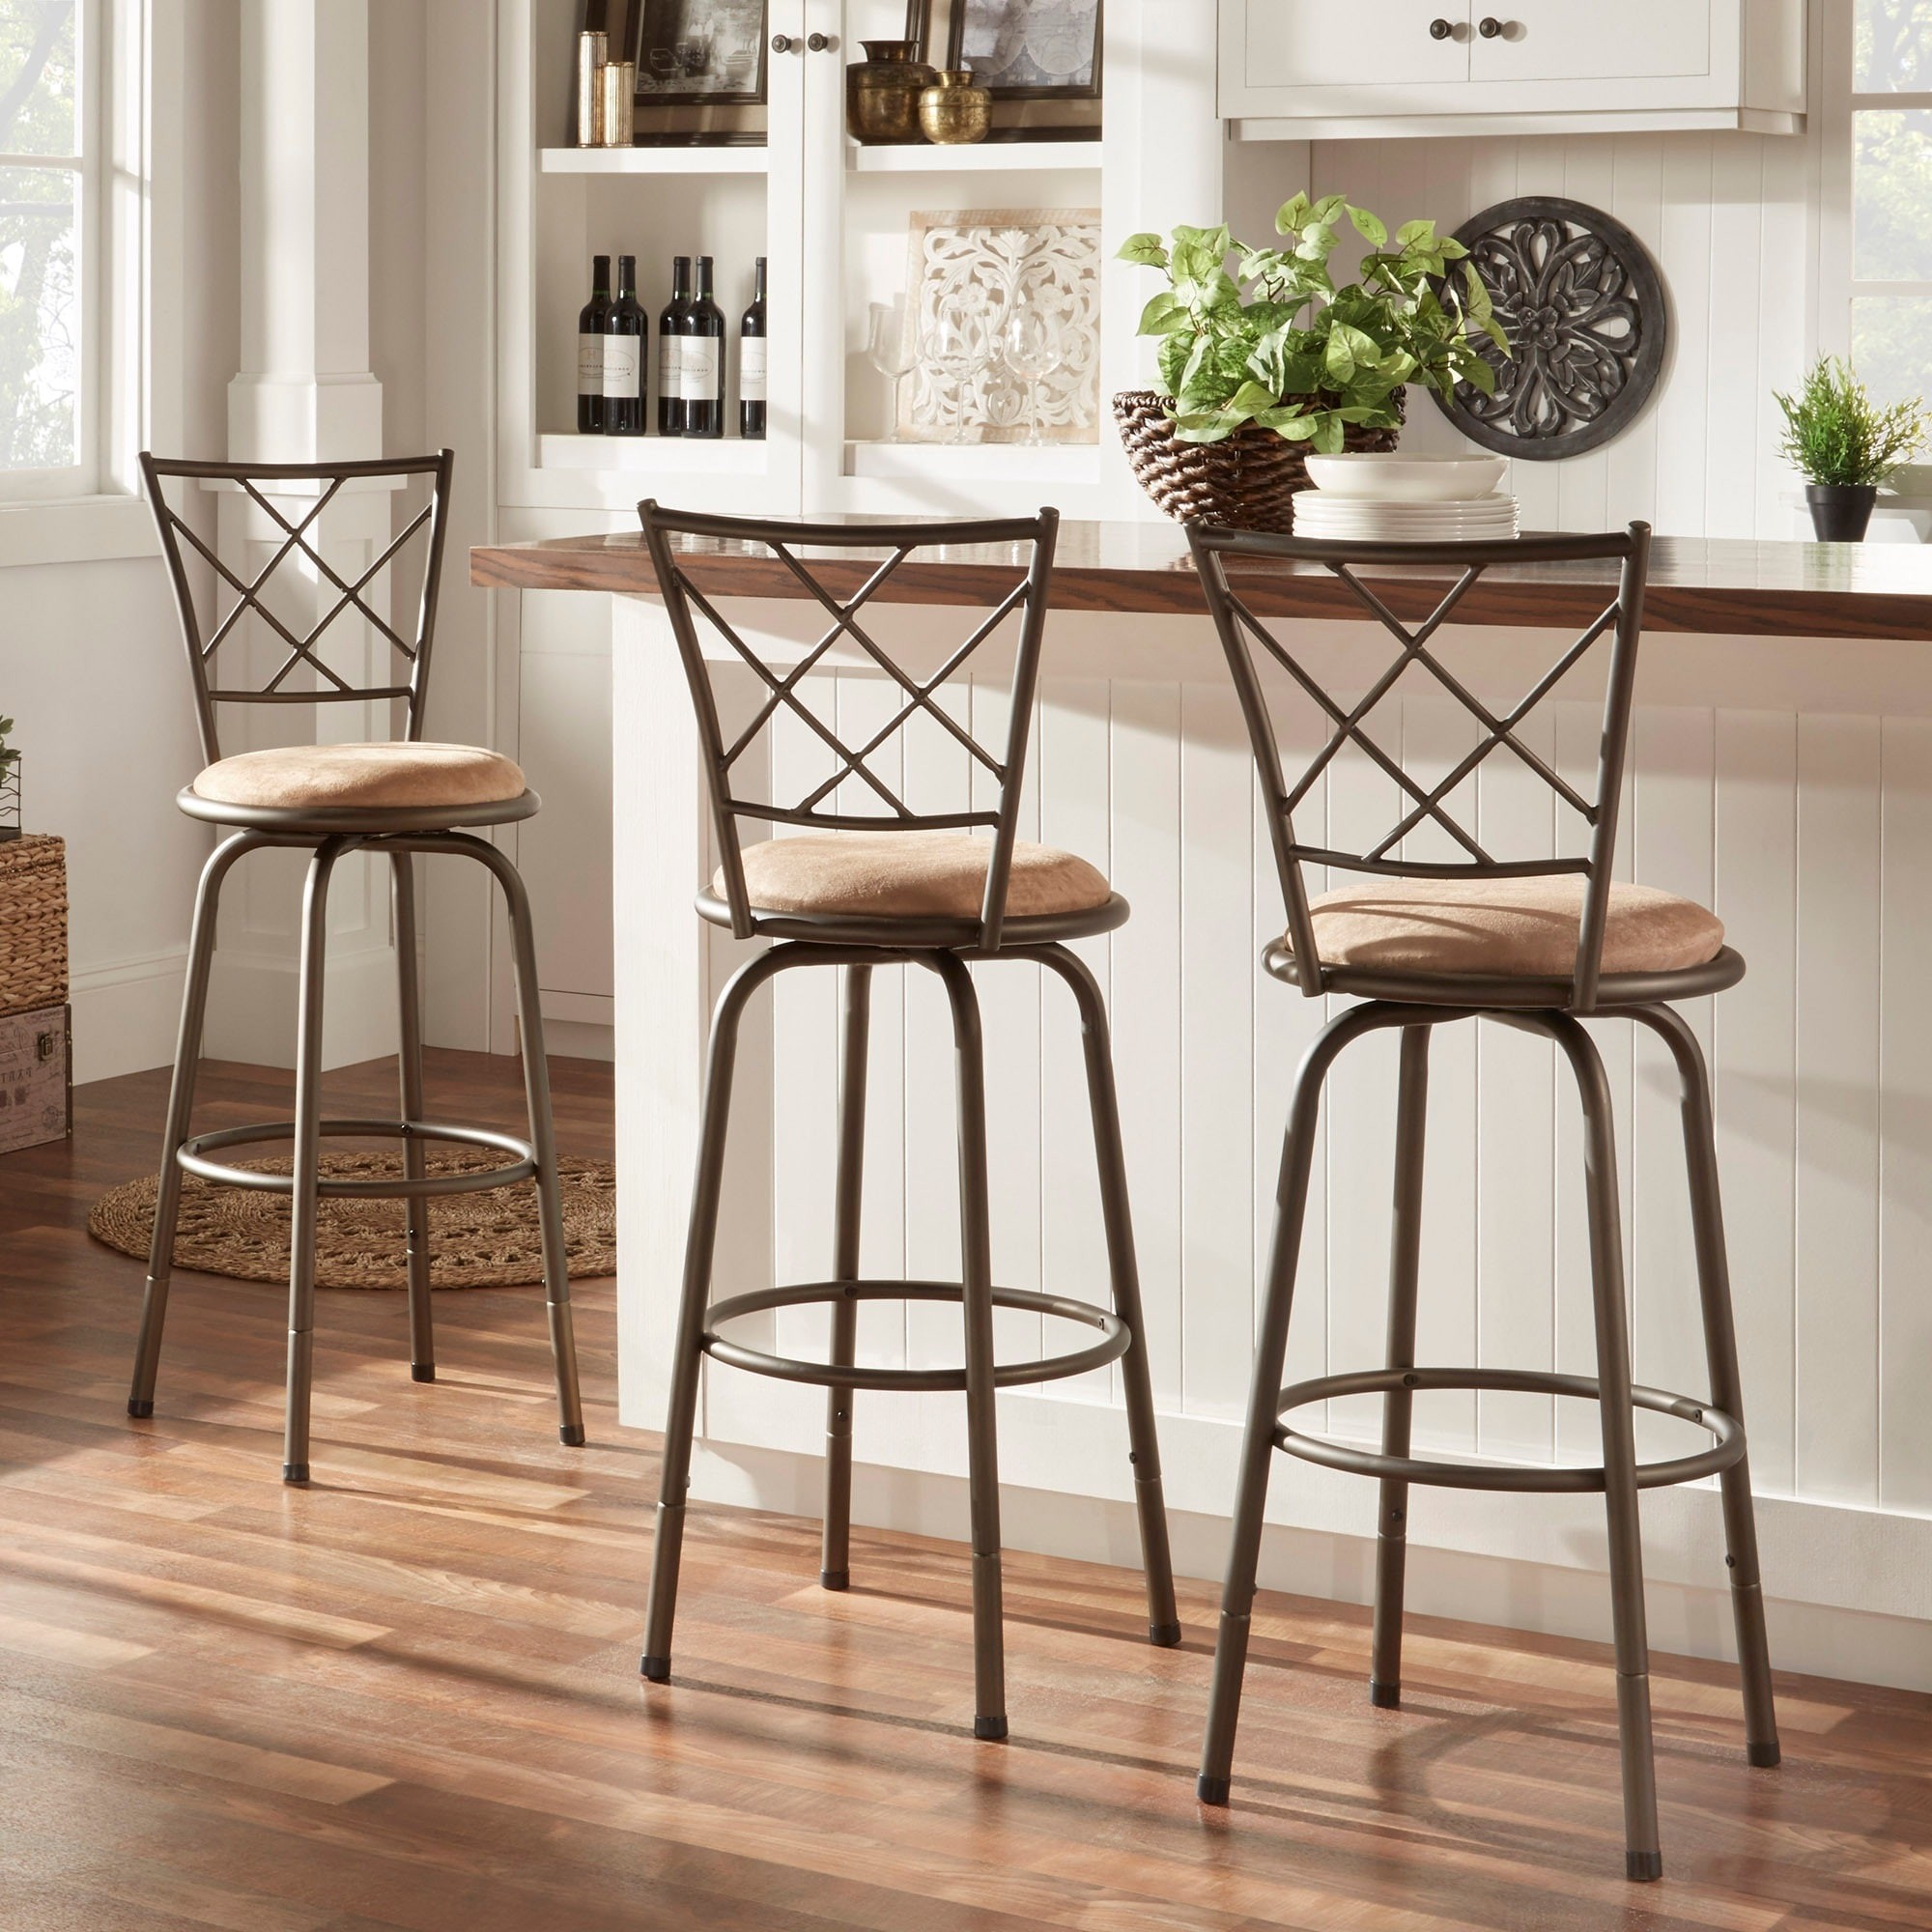 Counter Stools Overstock: TRIBECCA HOME Avalon Quarter Cross Swivel Counter Barstool